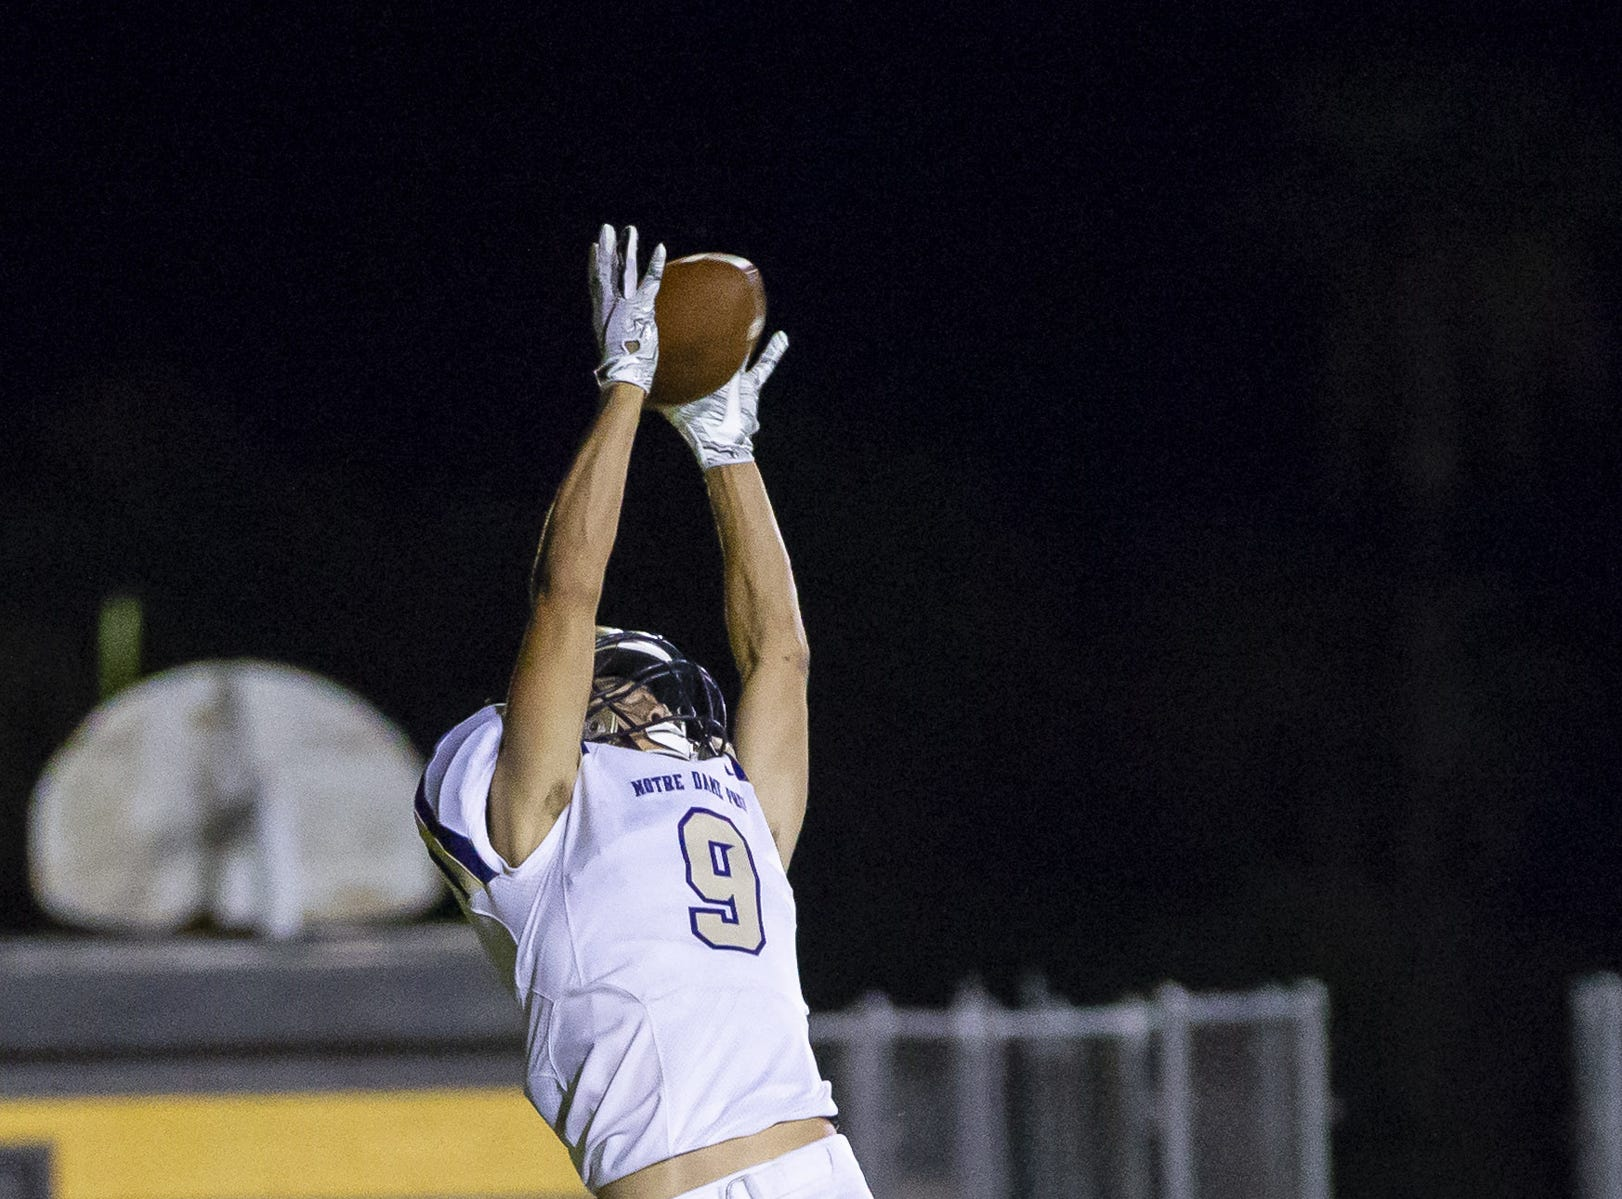 Senior wide receiver Zack Gray (9) of the Notre Dame Prep Saints attempts a catch against the Gilbert Tigers at Gilbert High School on Friday, Aug. 31, 2018, in Gilbert, Arizona.